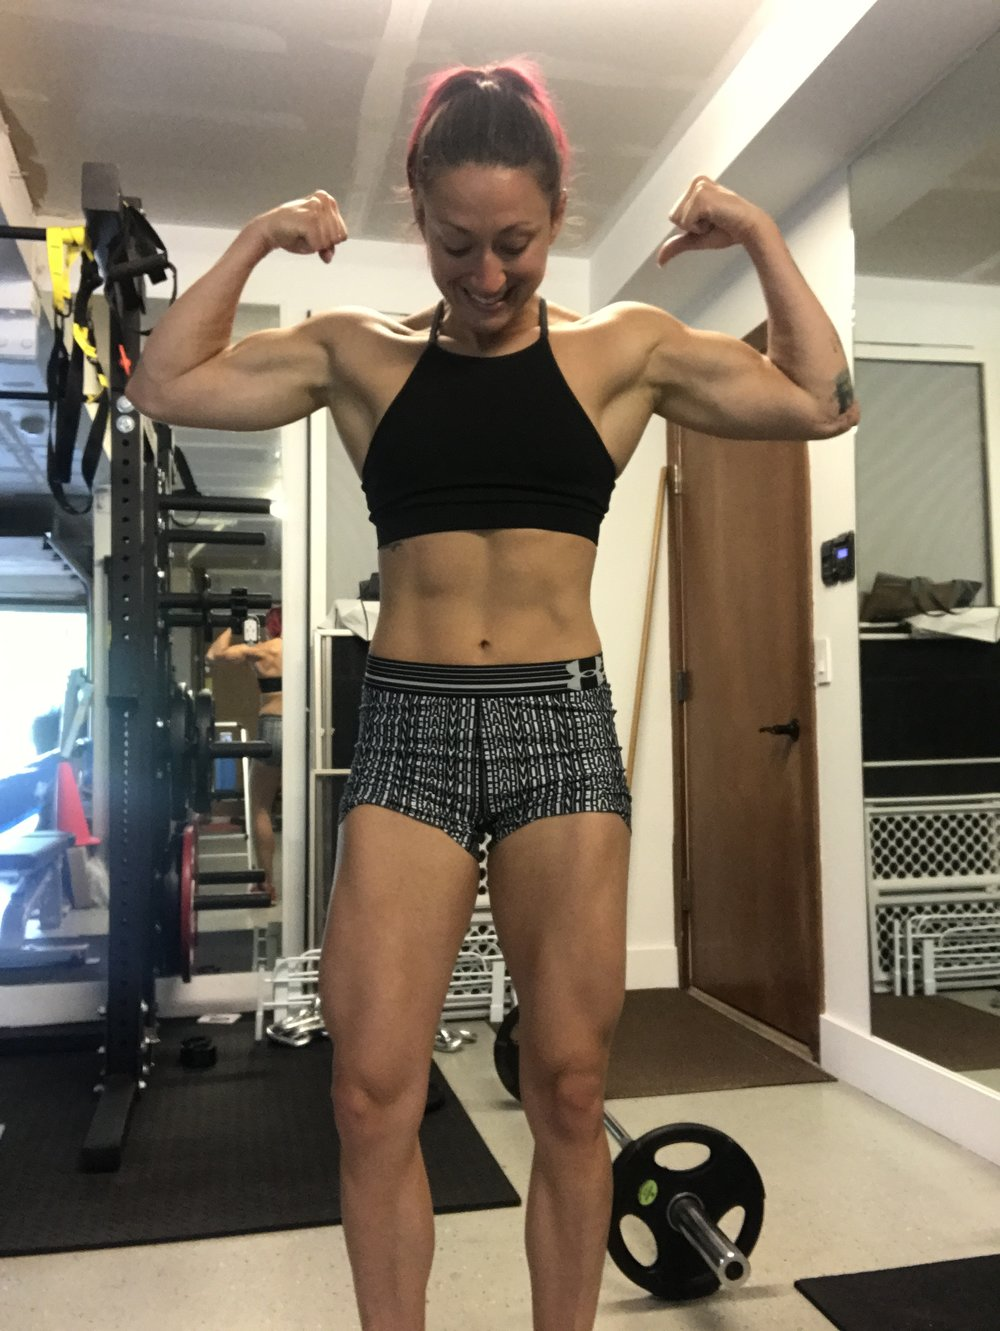 This is not just about a physical transformation. This is about building strength from the inside out and evolving closer towards the best version of me. - .